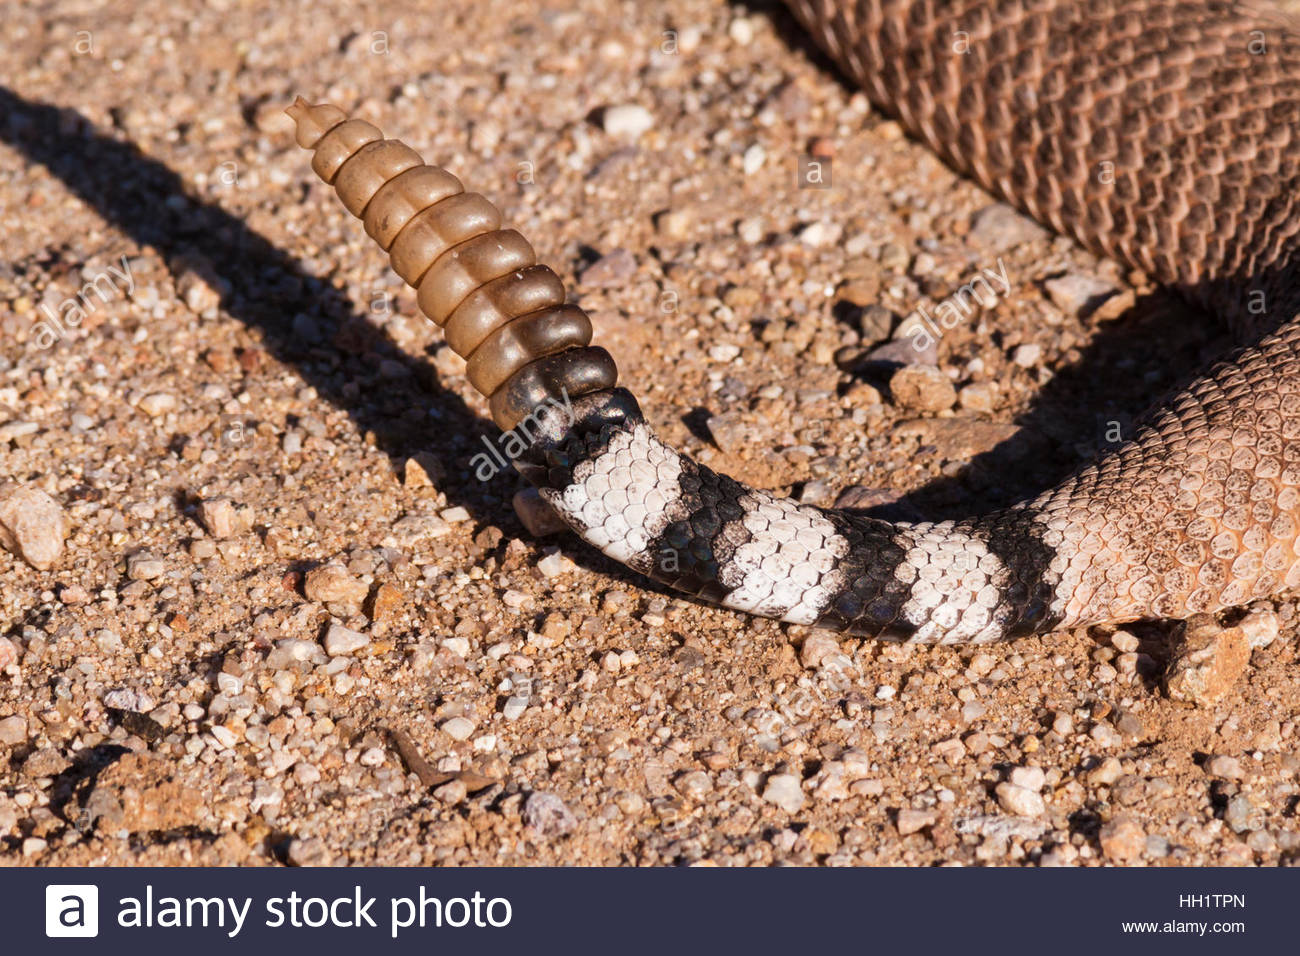 western-diamond-backed-rattlesnake-crotalus-atrox-detail-of-tail-and-HH1TPN.jpg